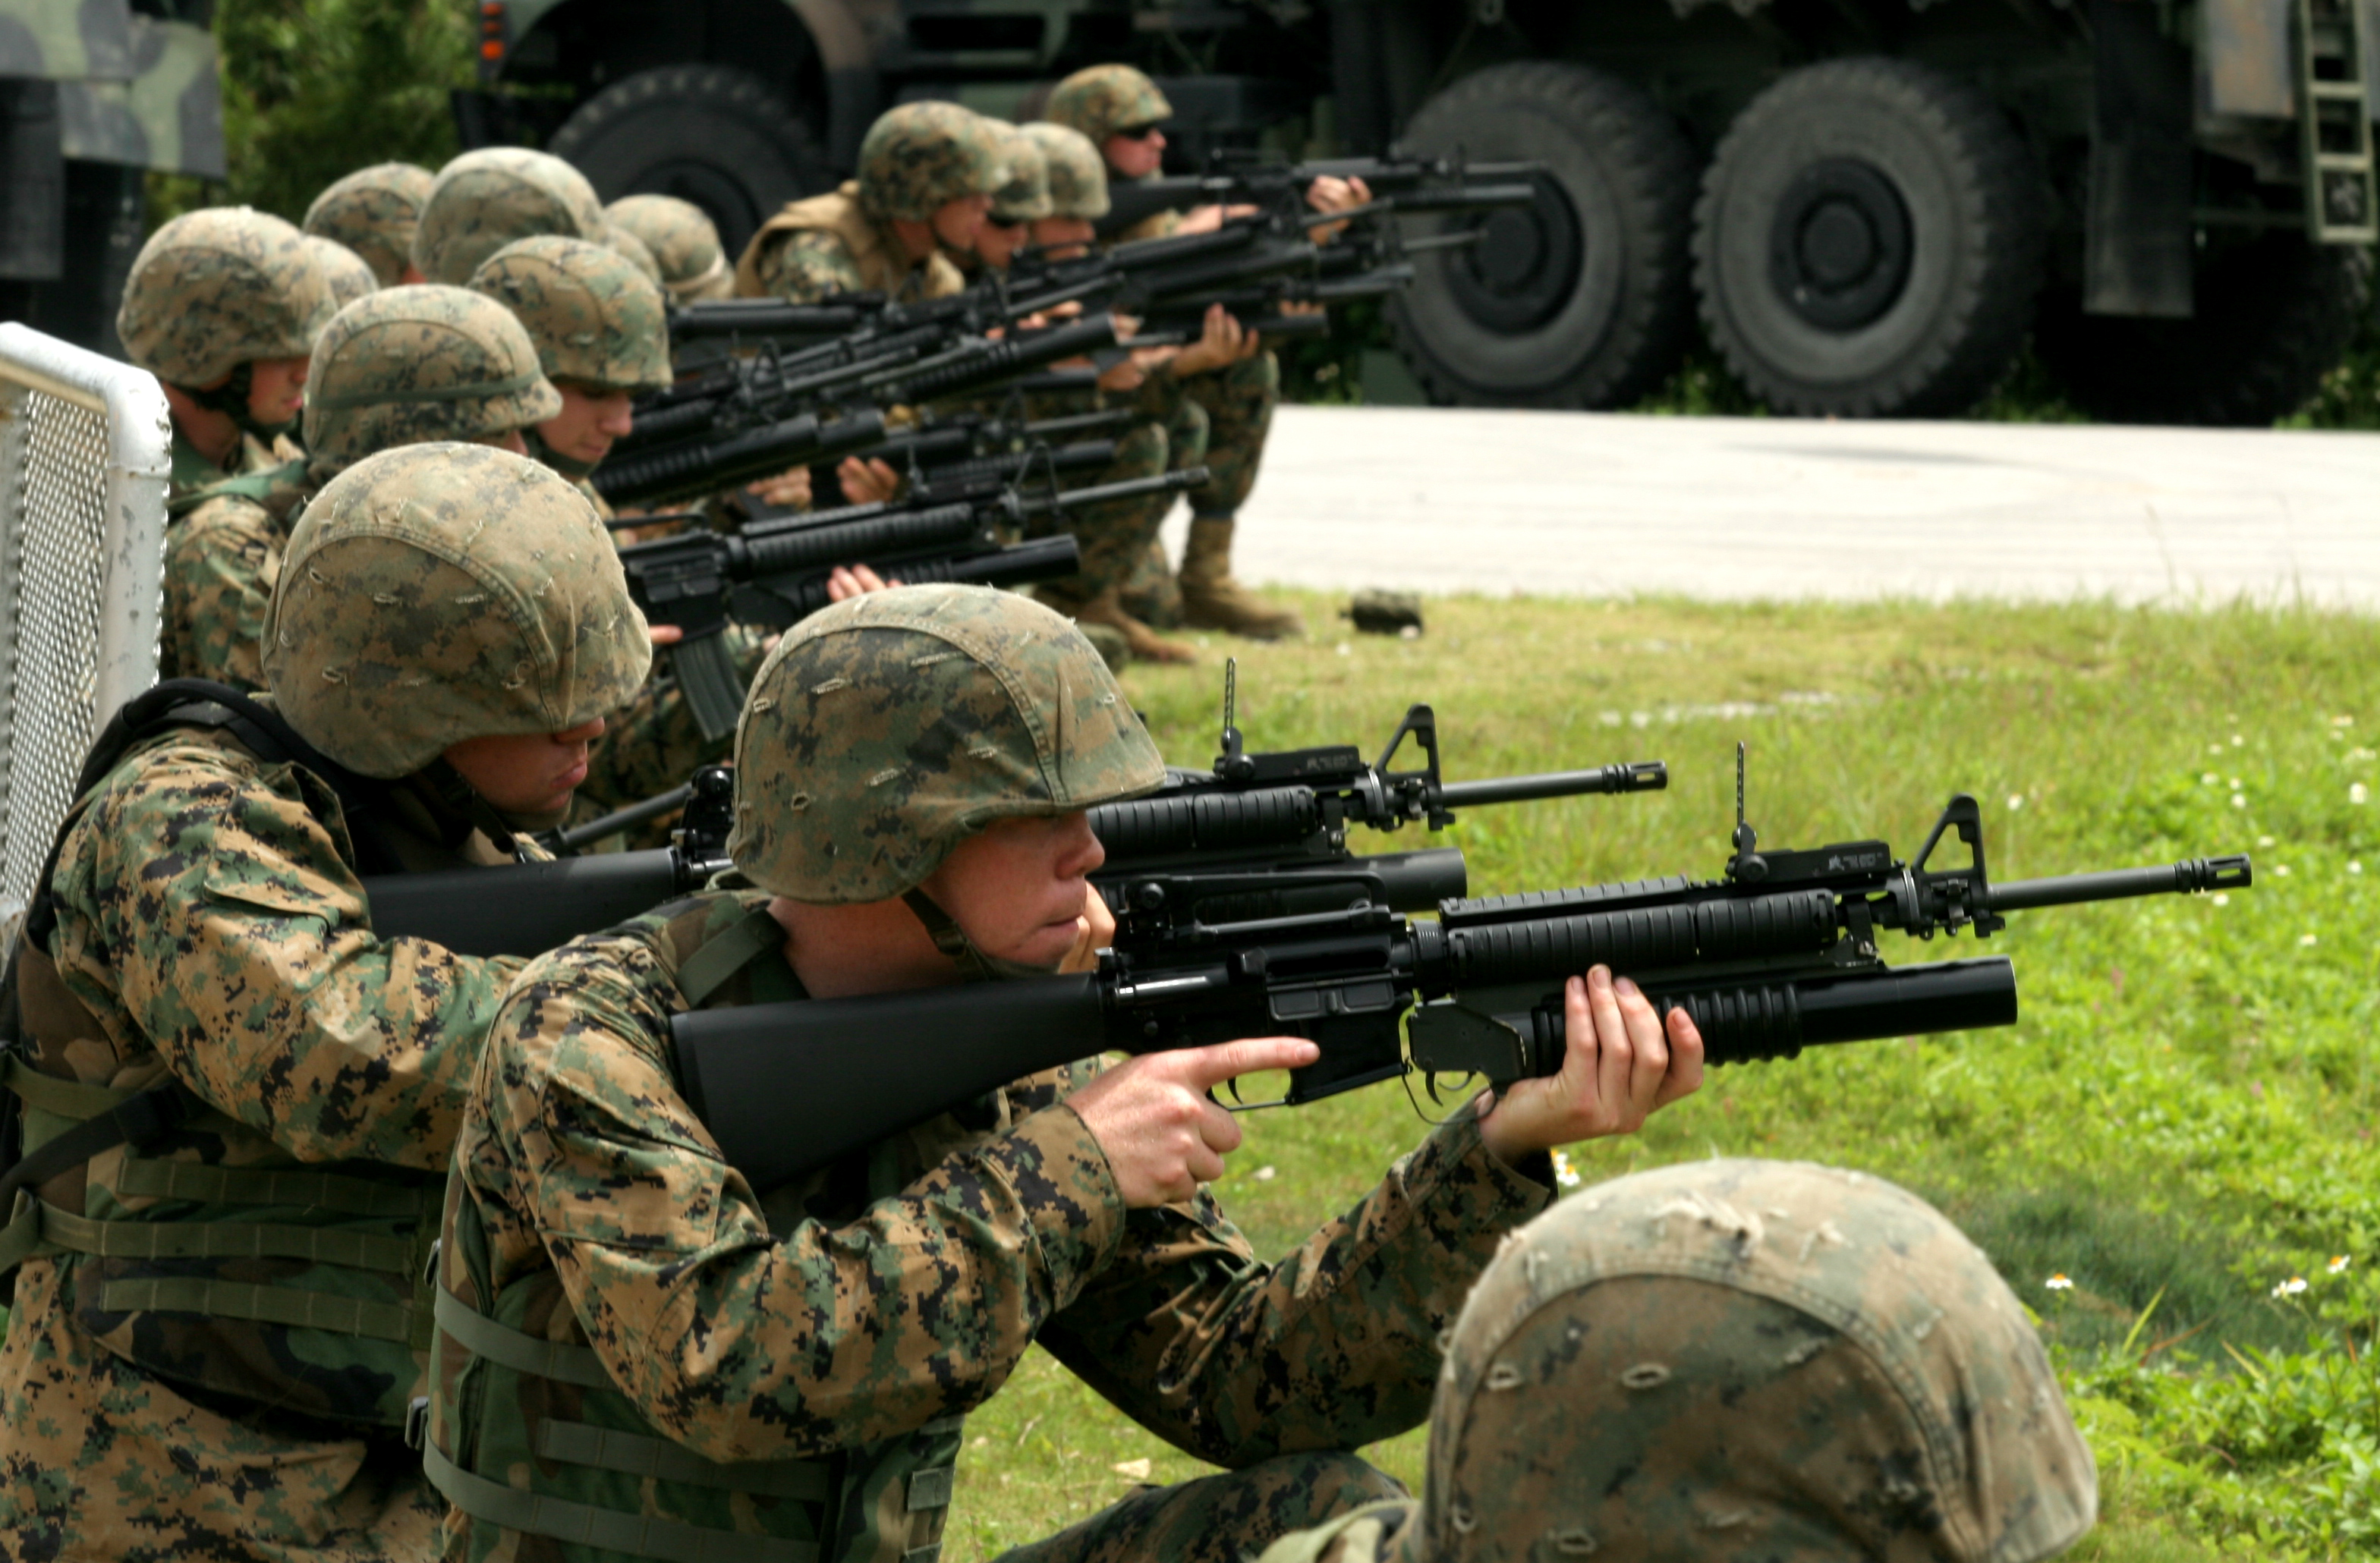 File:Marines M203 Training.JPG - Wikimedia Commons